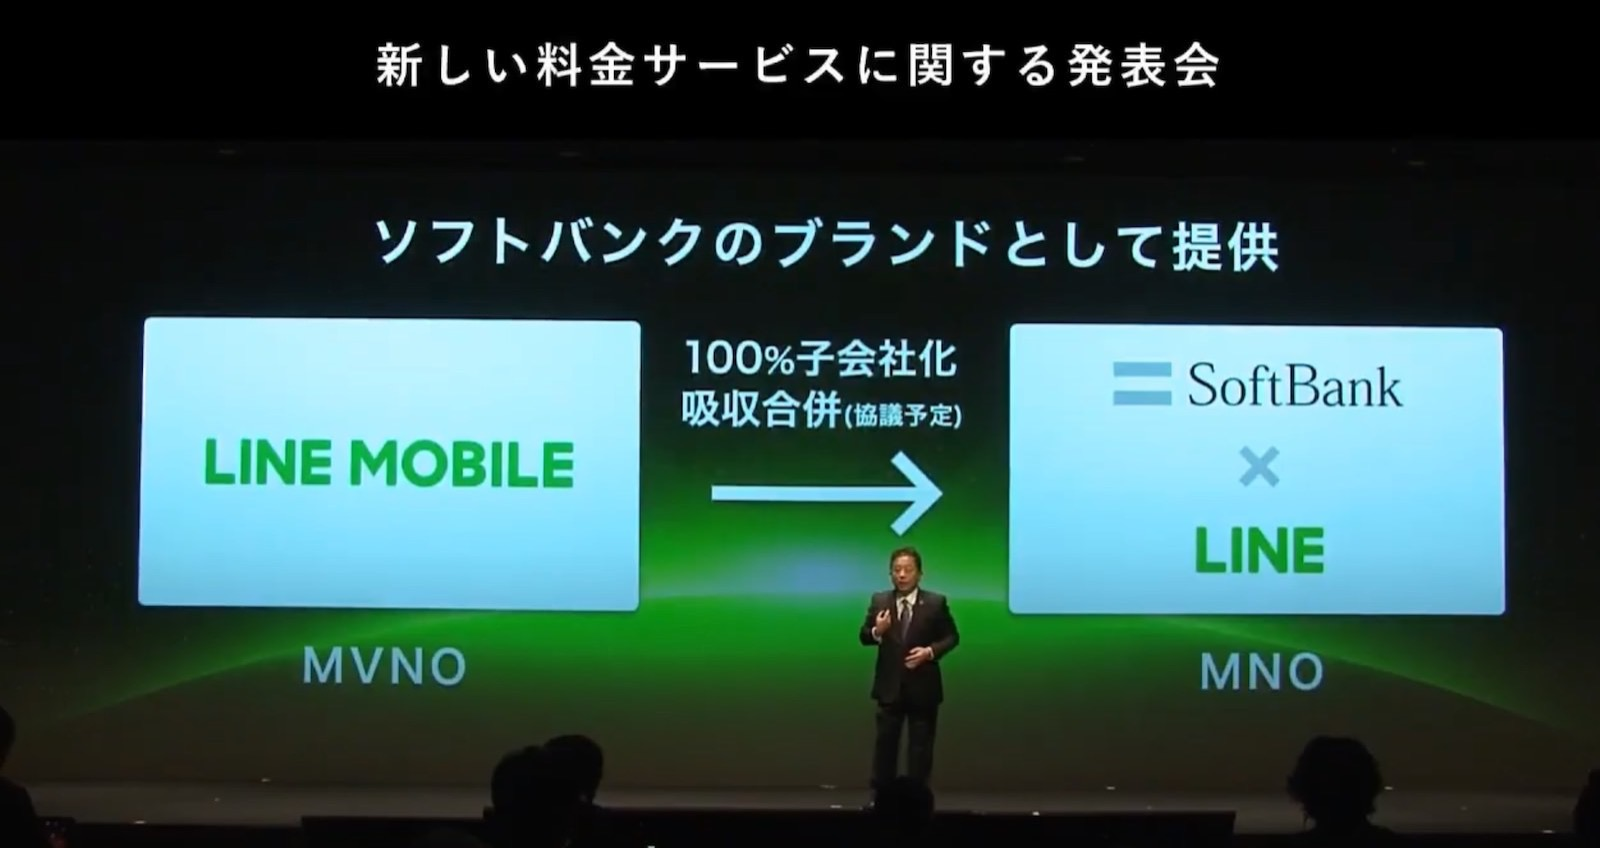 Softbank on line 1